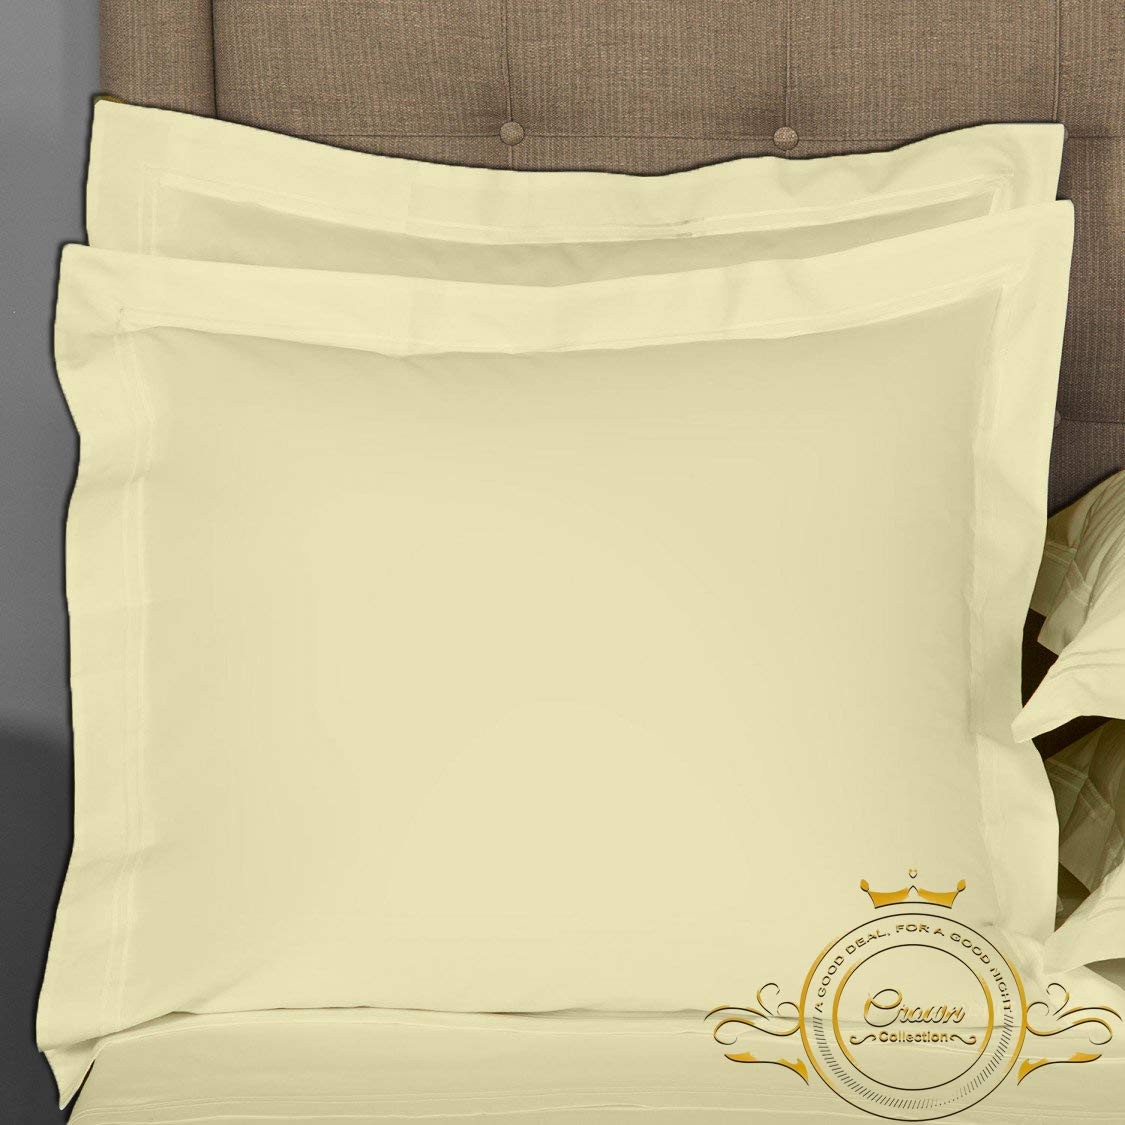 Crown Collection Ivory Solid European Square Pillow Shams Set of 2 pc - Hypoallergenic 600-TC 100% Egyptian Cotton Decorative Cushion Cover Euro Pillow Sham (Ivory, Euro 26'' x 26'')